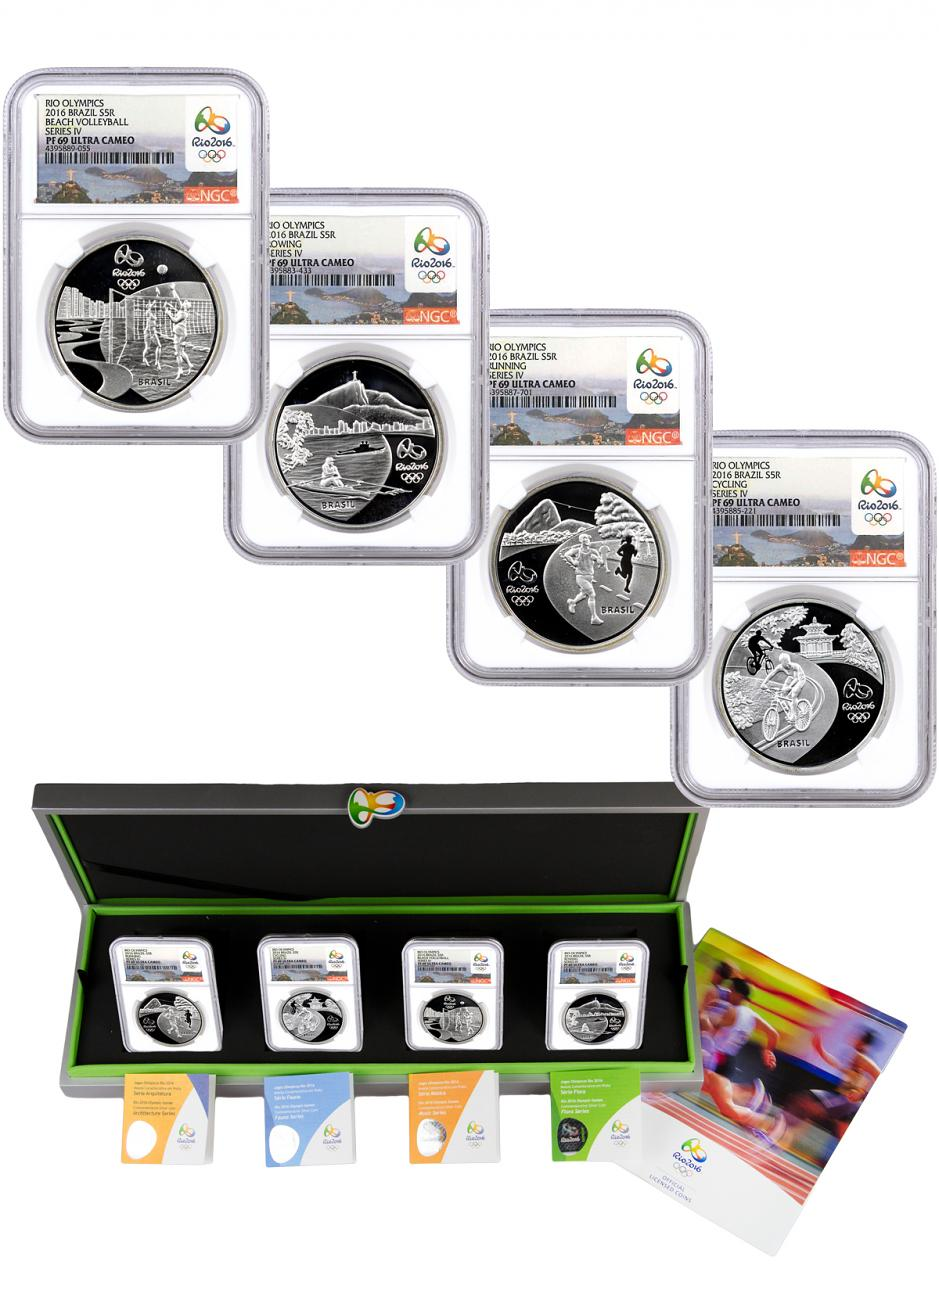 2014 Brazil 5 Reais Proof Silver Rio 2016 Olympics Series 4 - Set of 4 Coins - NGC PF69 UC (Rio 2016 Label)